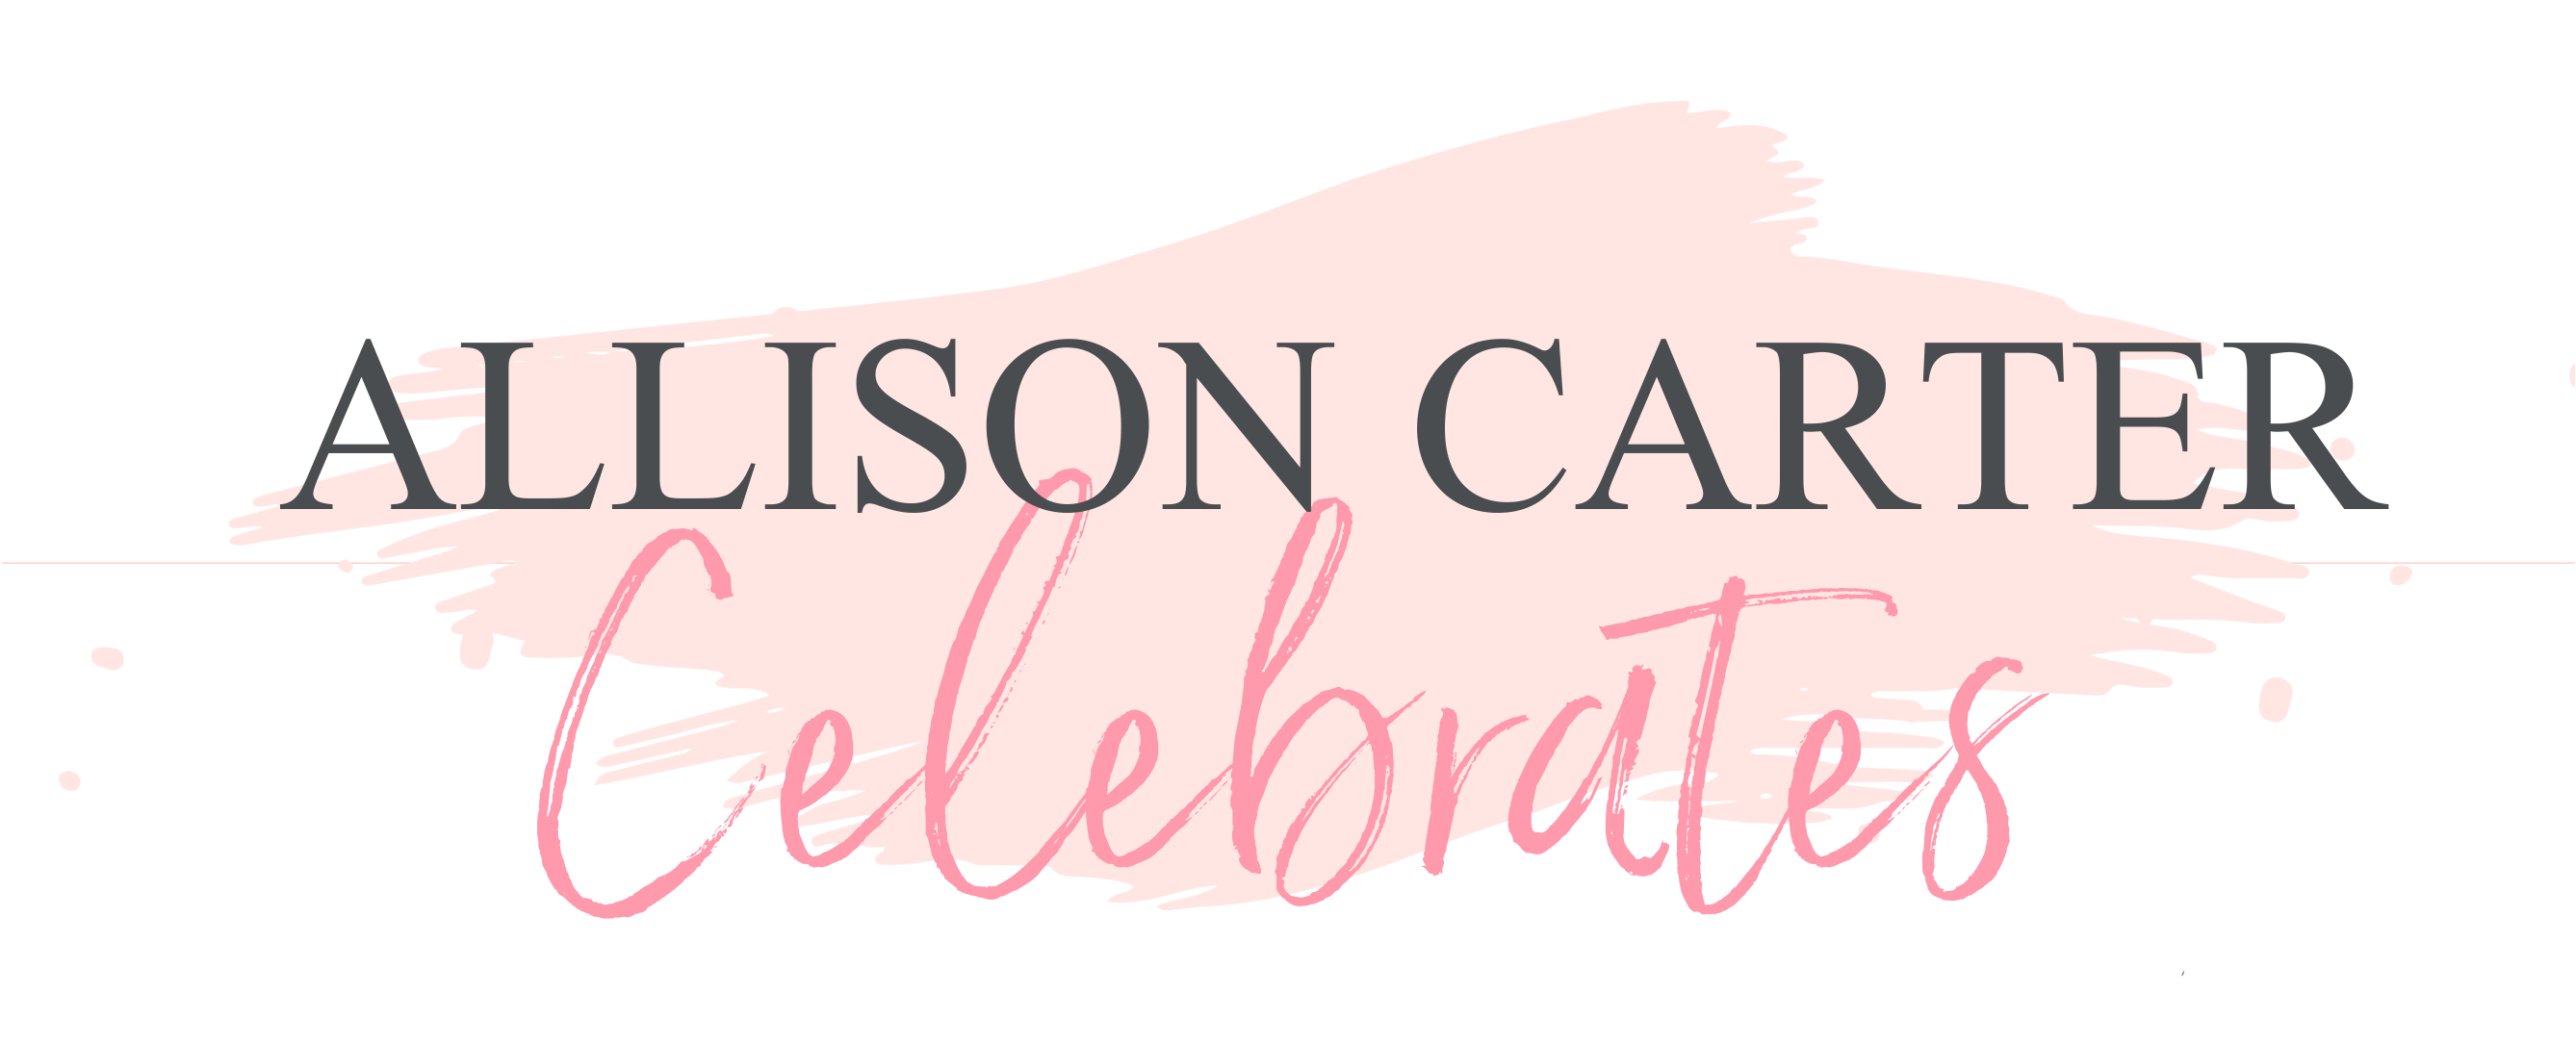 allisoncartercelebrates